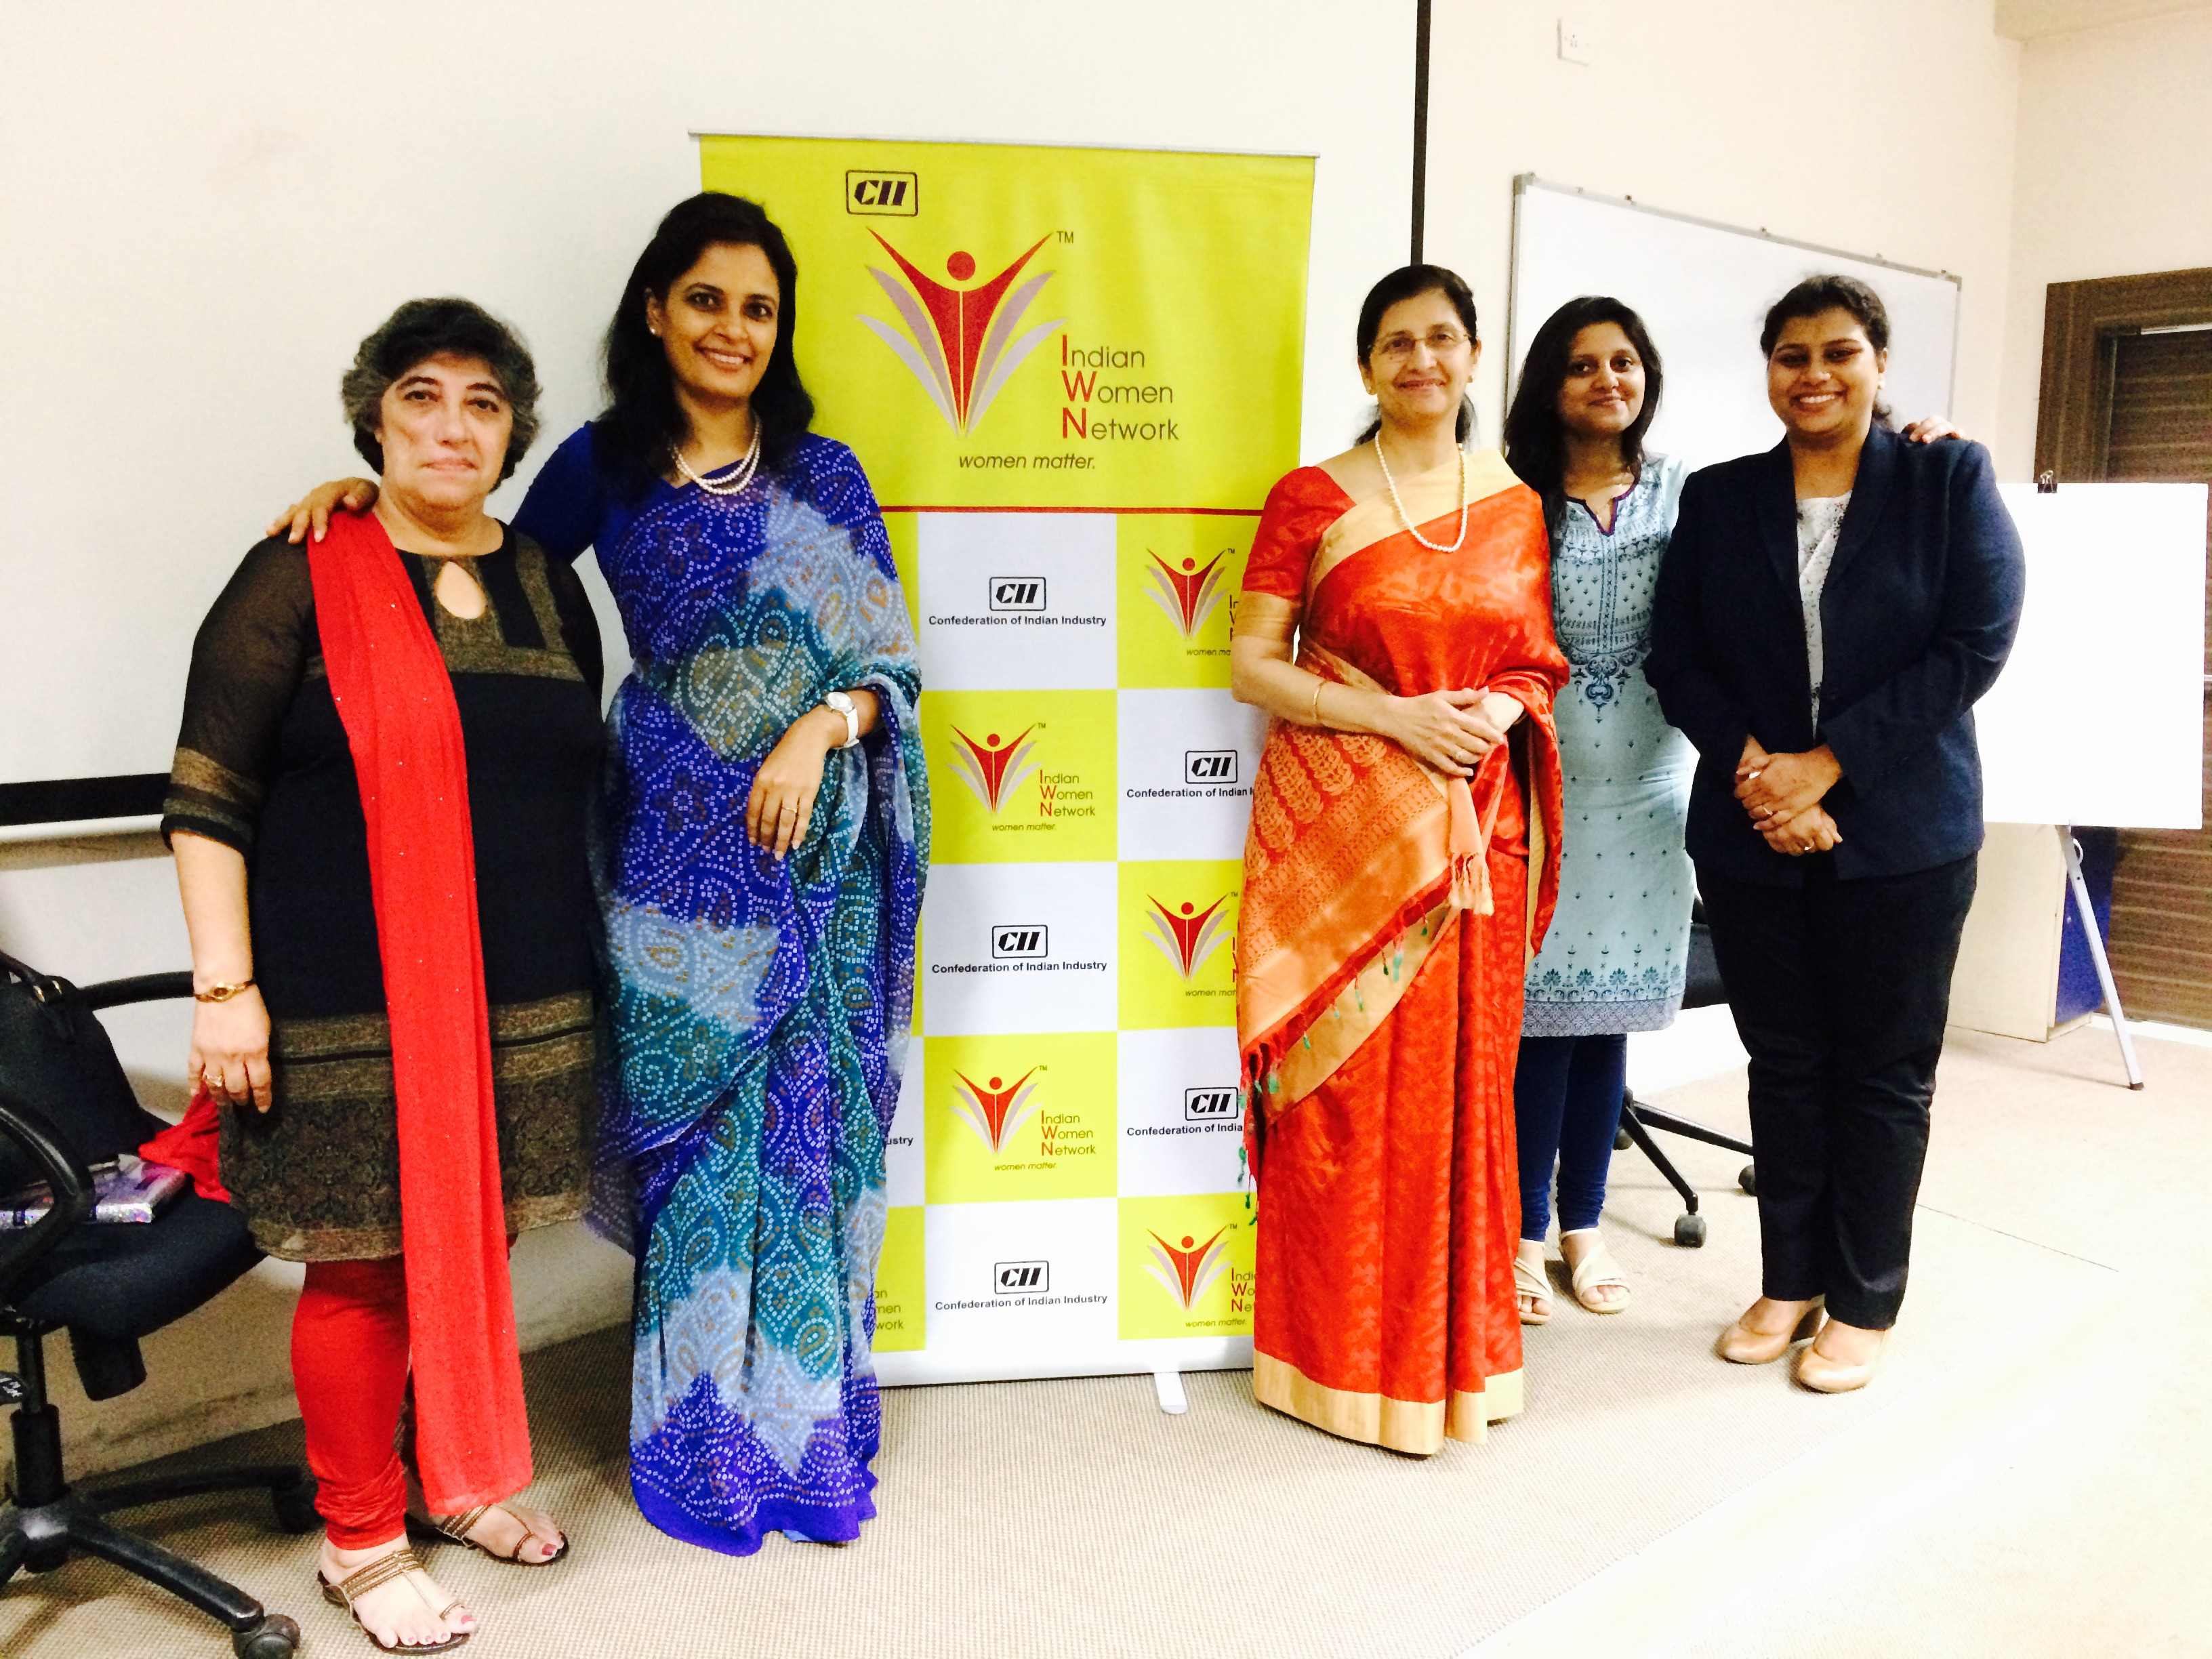 CII WR Indian Women Network 100 Hours of Change Mentoring Session